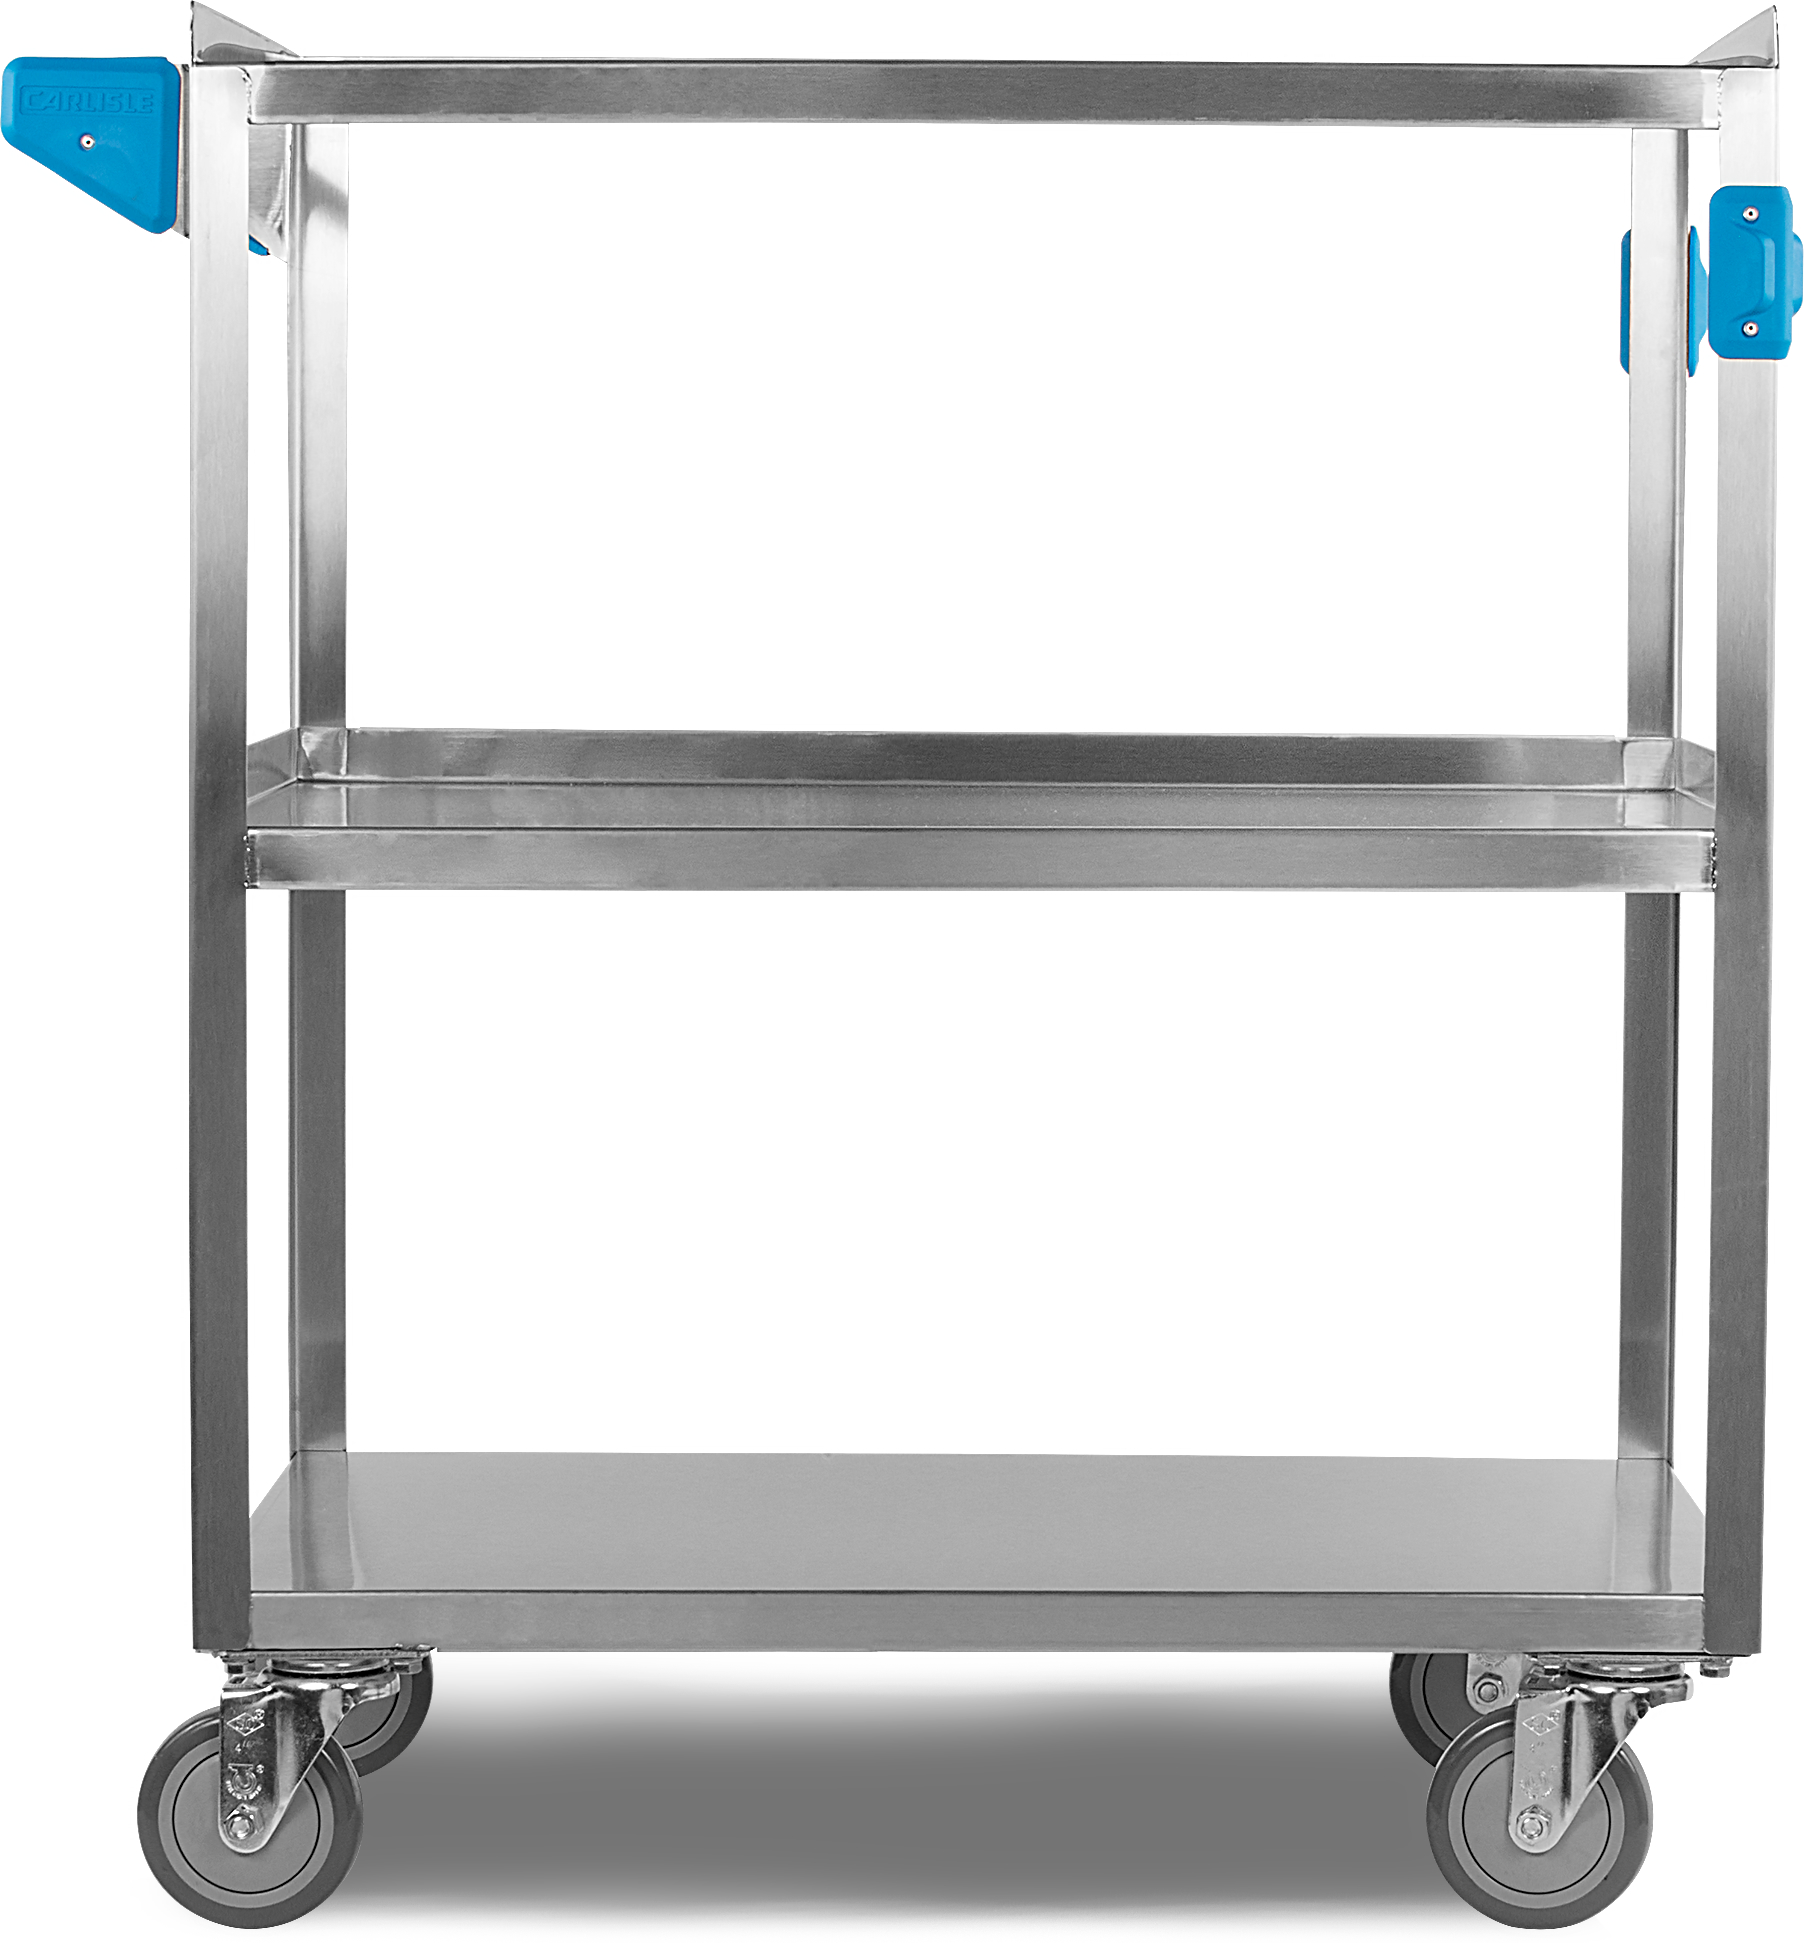 3 Shelf Stainless Steel Utility Cart 500 lb Capacity 18W x 27L - Stainless Steel